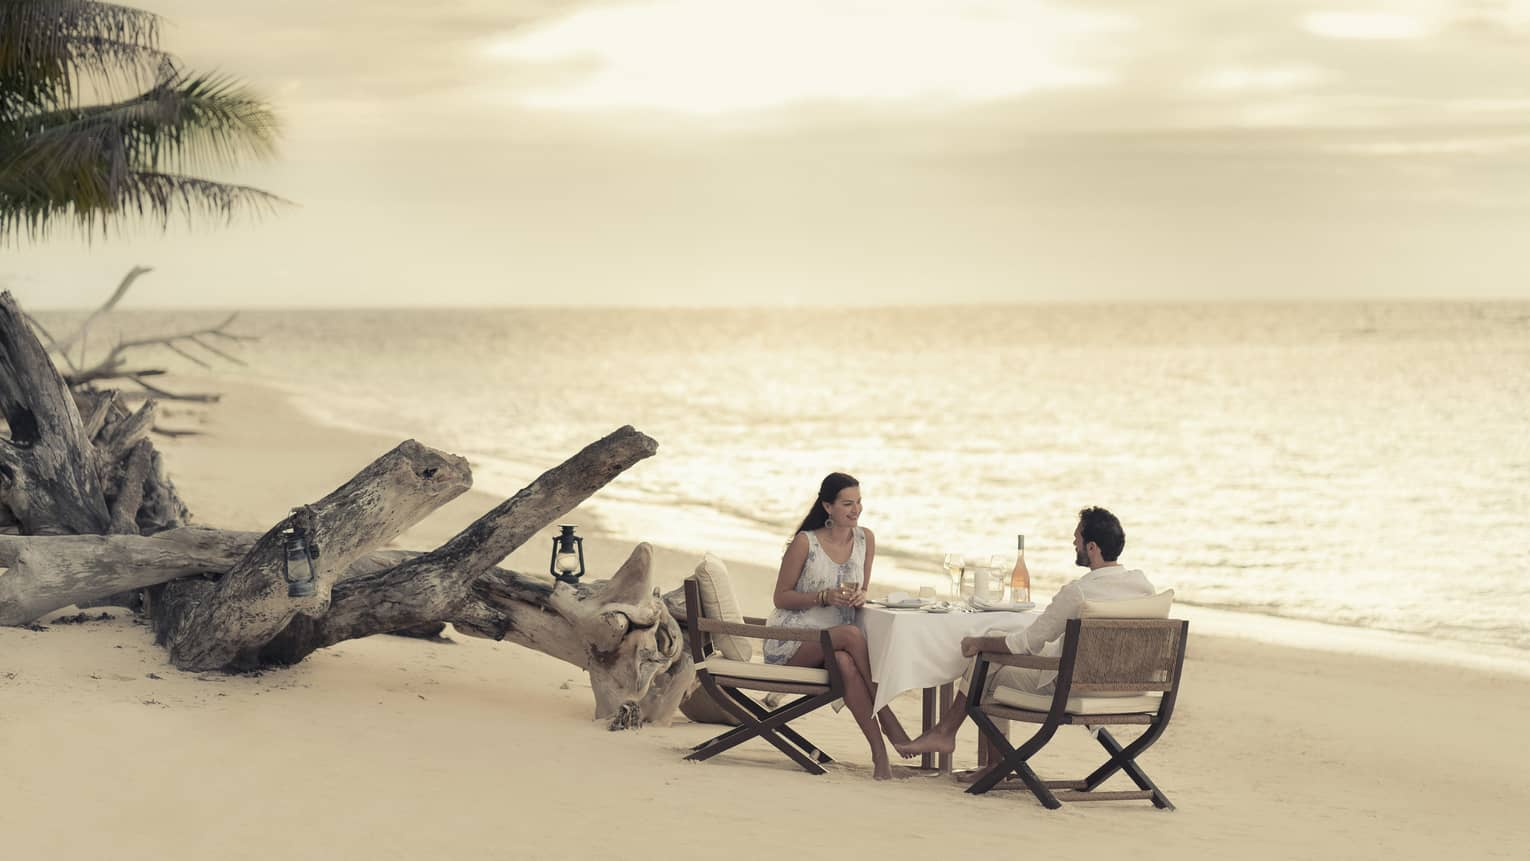 Couple enjoy romantic beach dinner by driftwood on sand beach at sunset